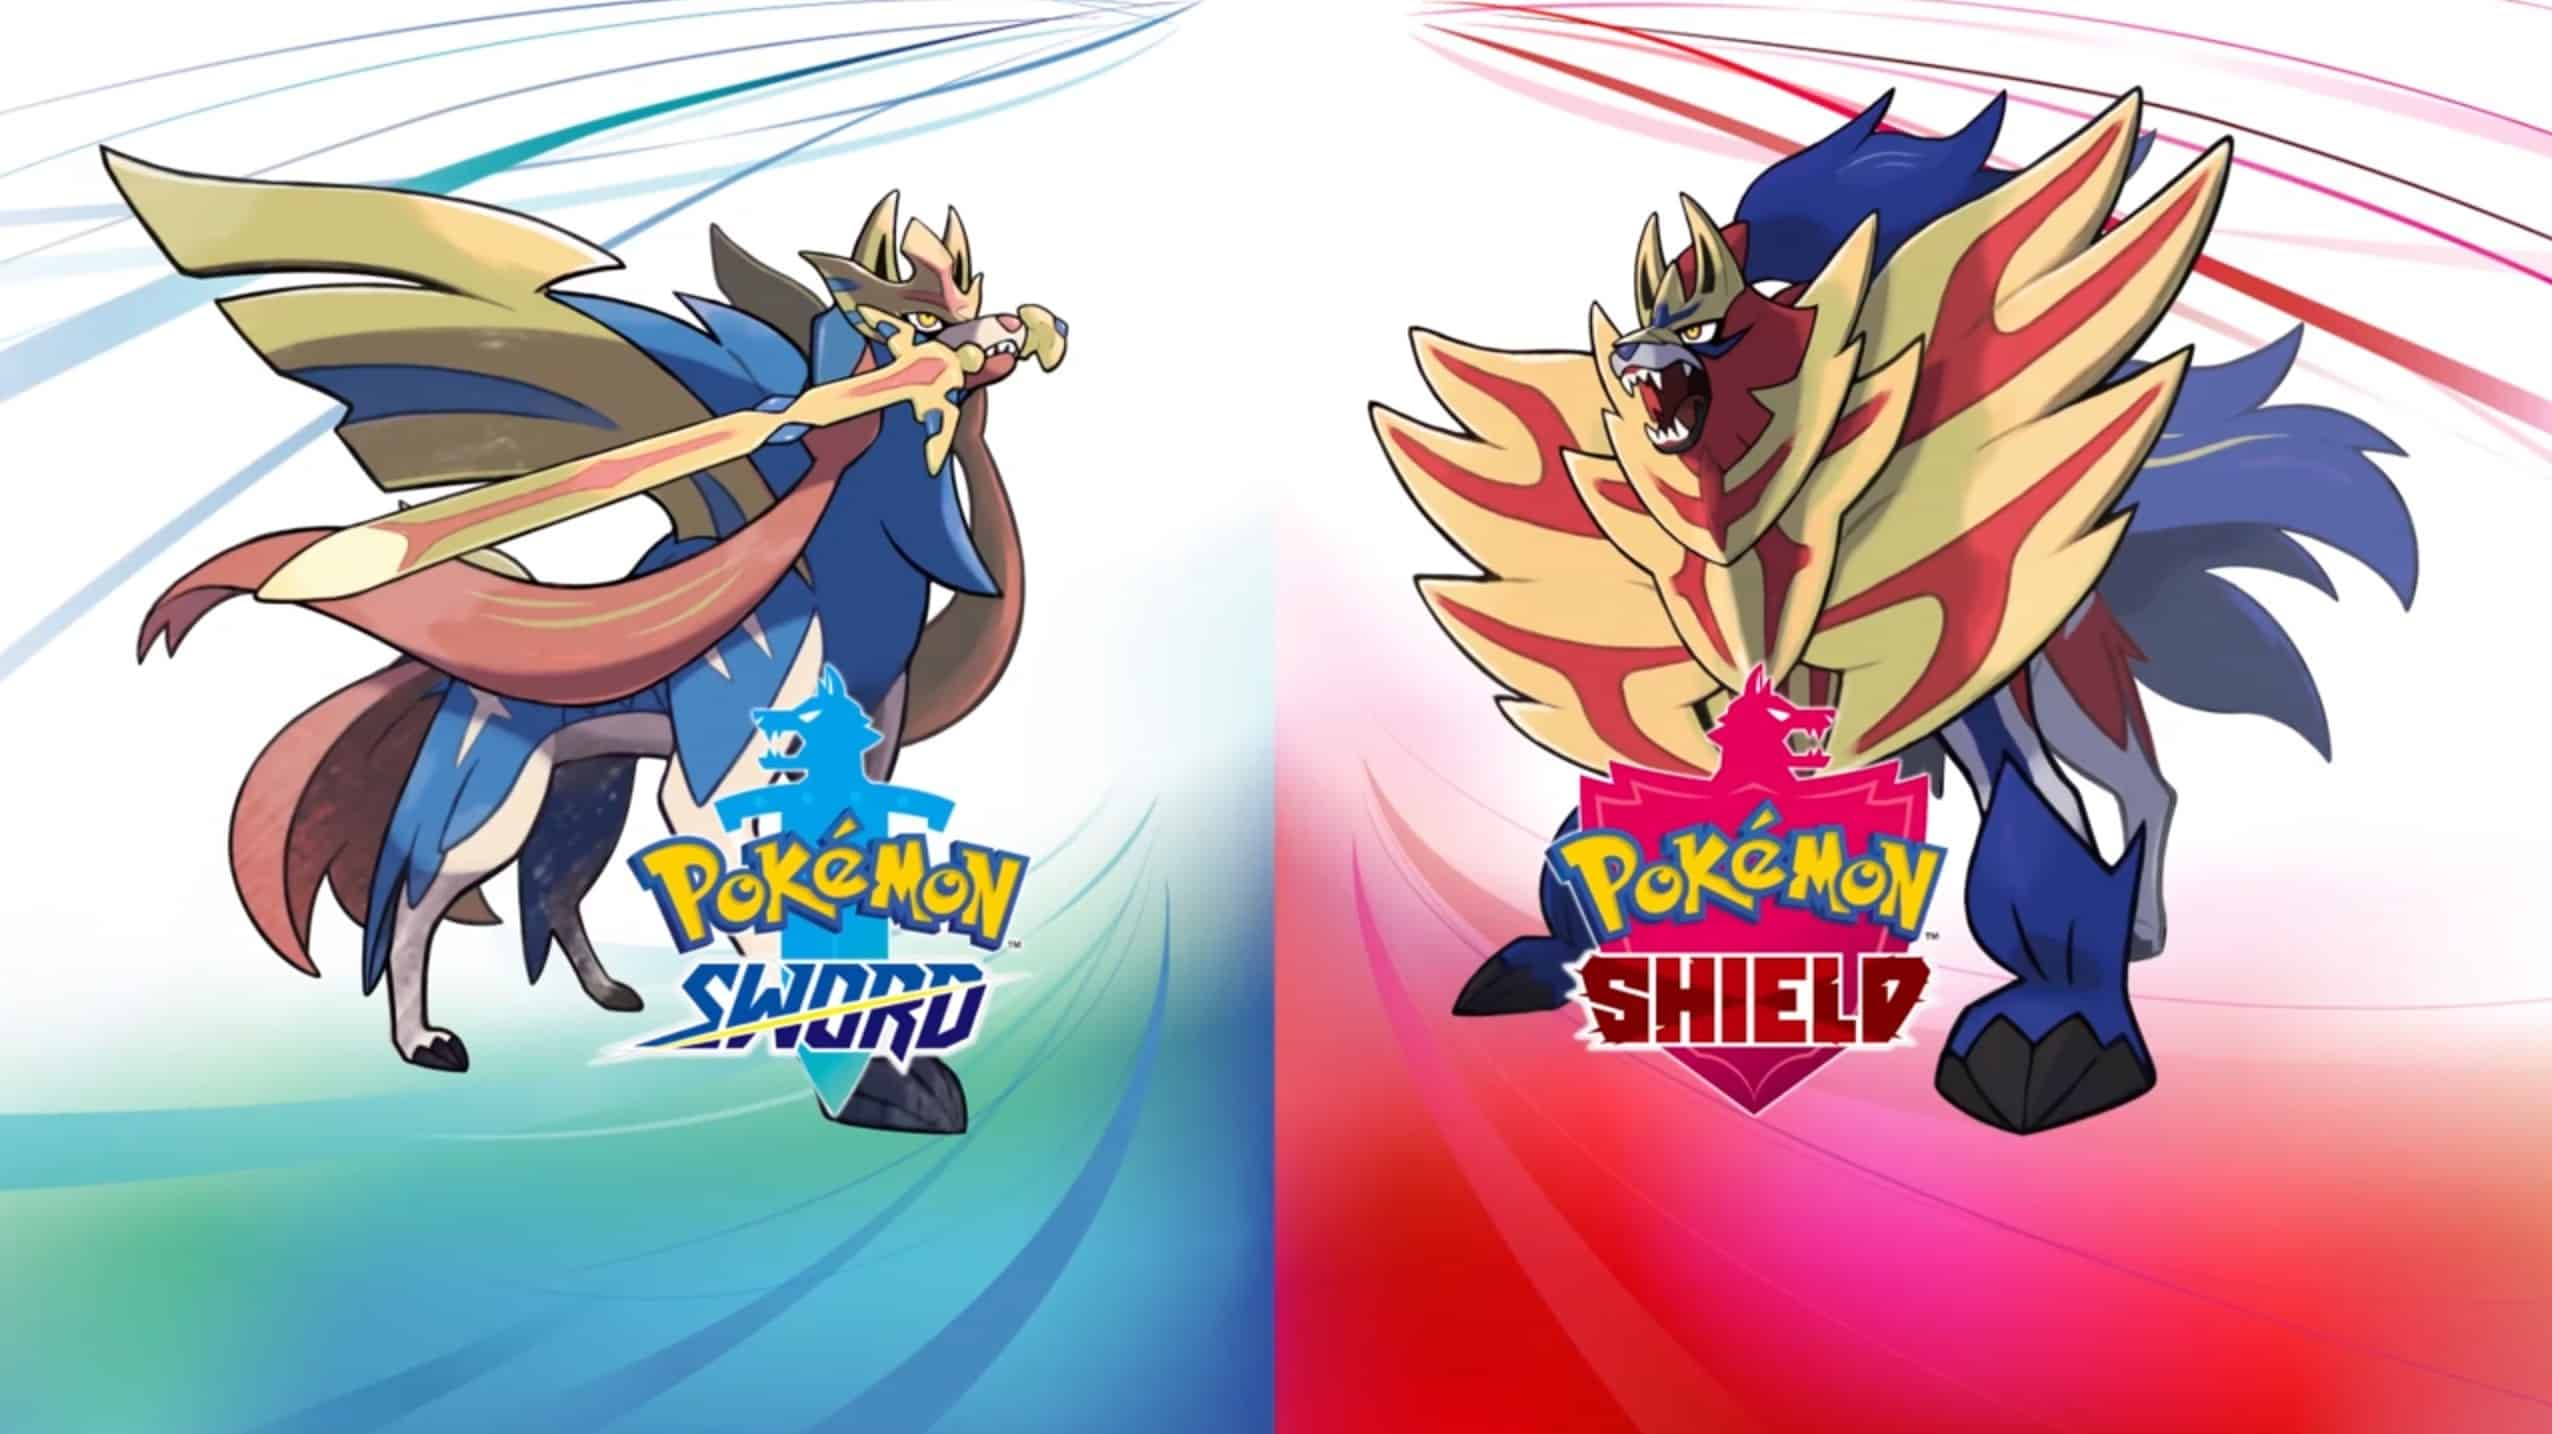 Pokemon Sword Release Date